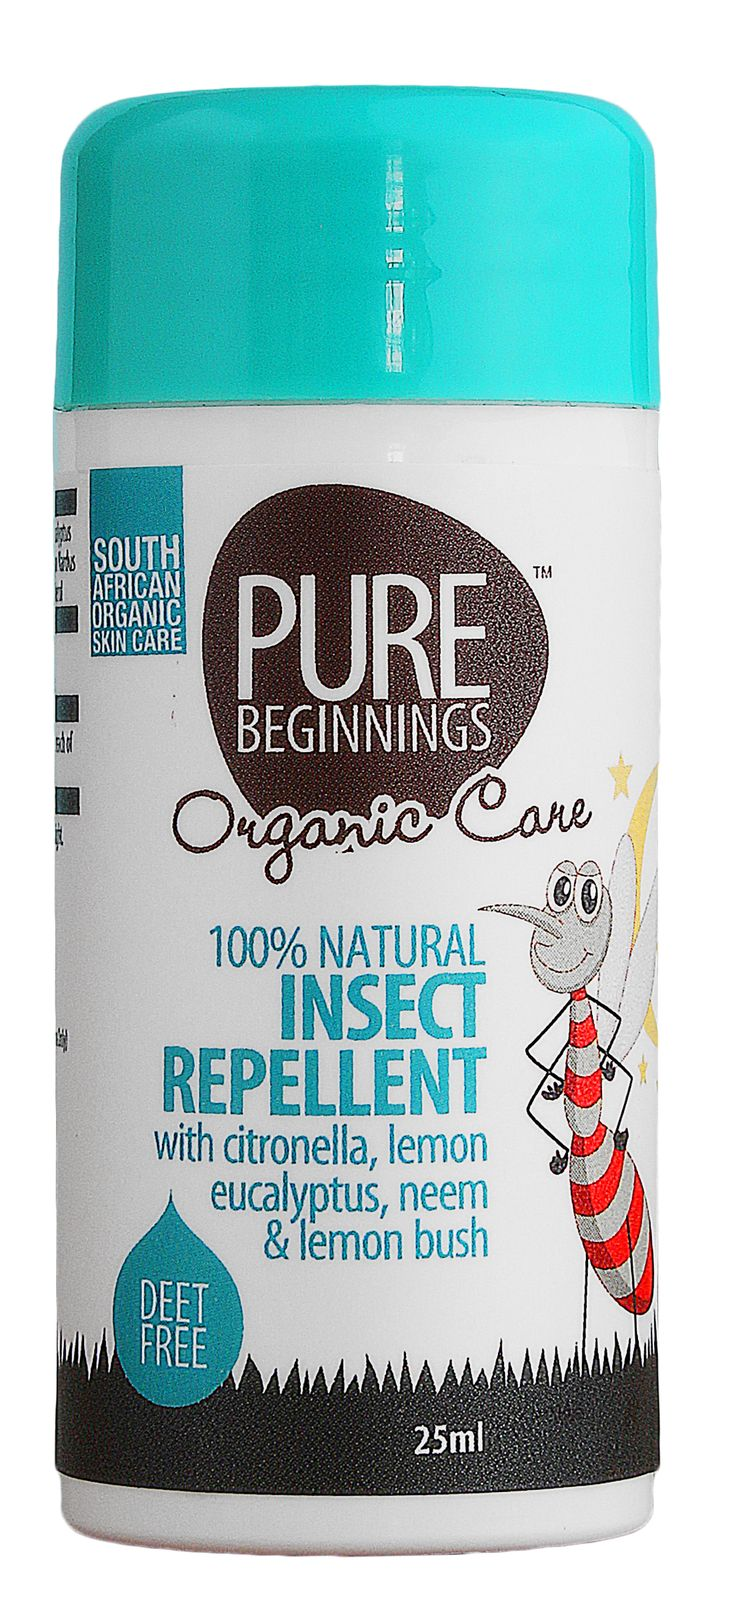 25ml  100% Natural Insect Repellent     * 100% Natural  * DEET FREE    * Stick for easy application to the face